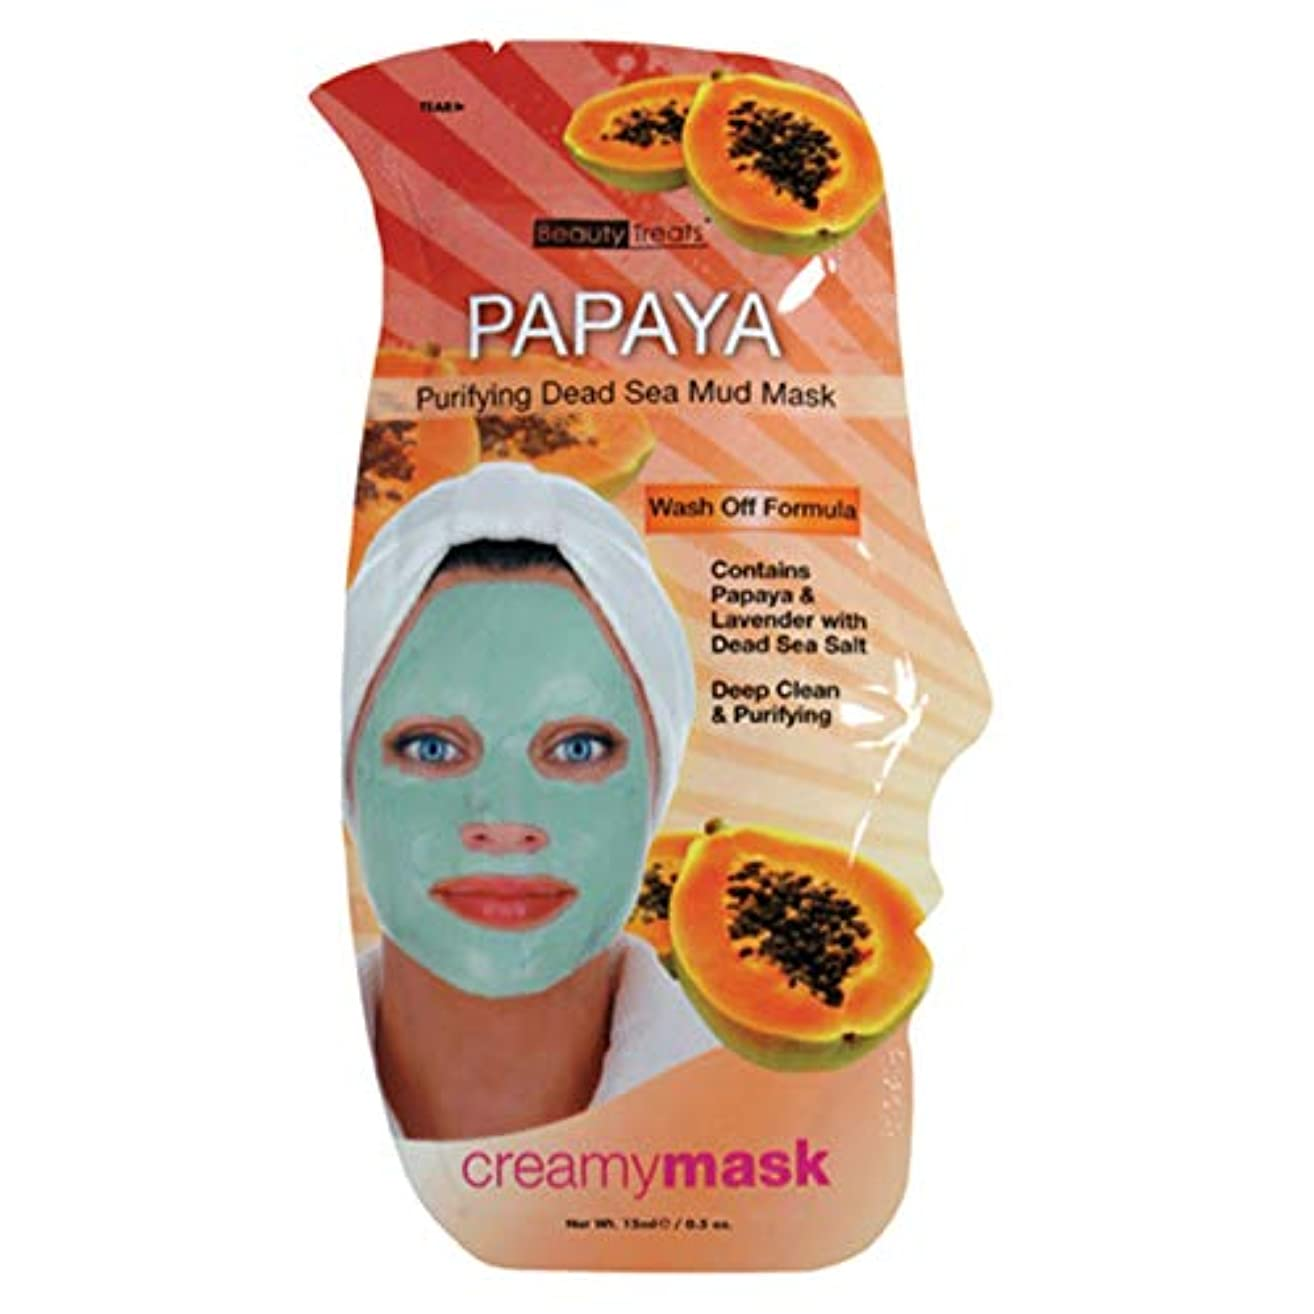 内側たらい喜ぶBEAUTY TREATS Papaya Purifying Dead Sea Mud Mask - Papaya (並行輸入品)